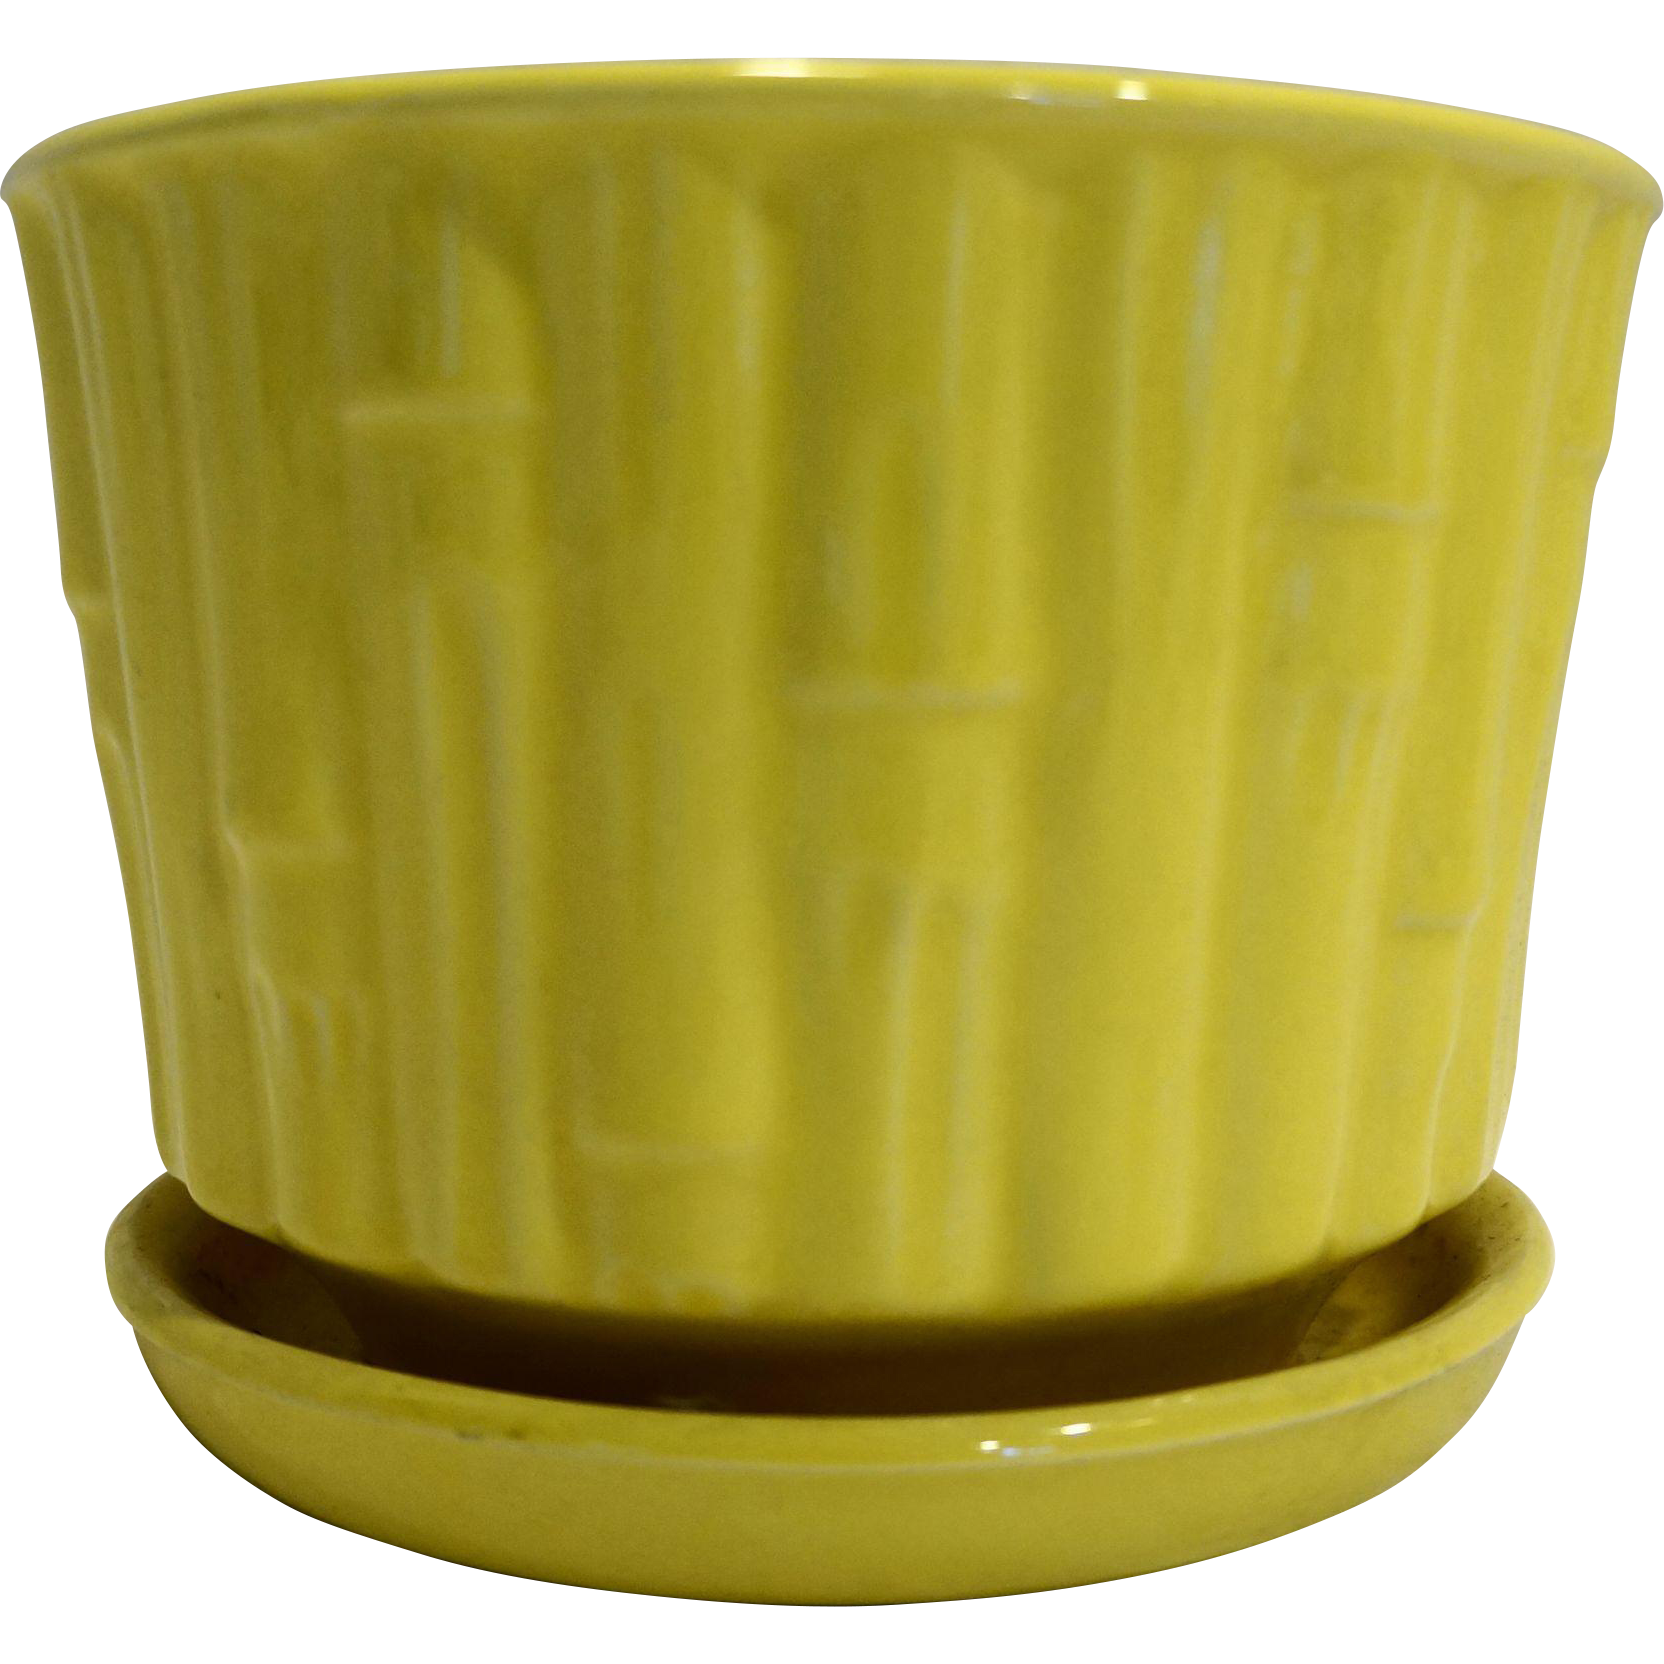 Mccoy Bamboo Bright Yellow Flower Pot Planter With Saucer 0373 1970s